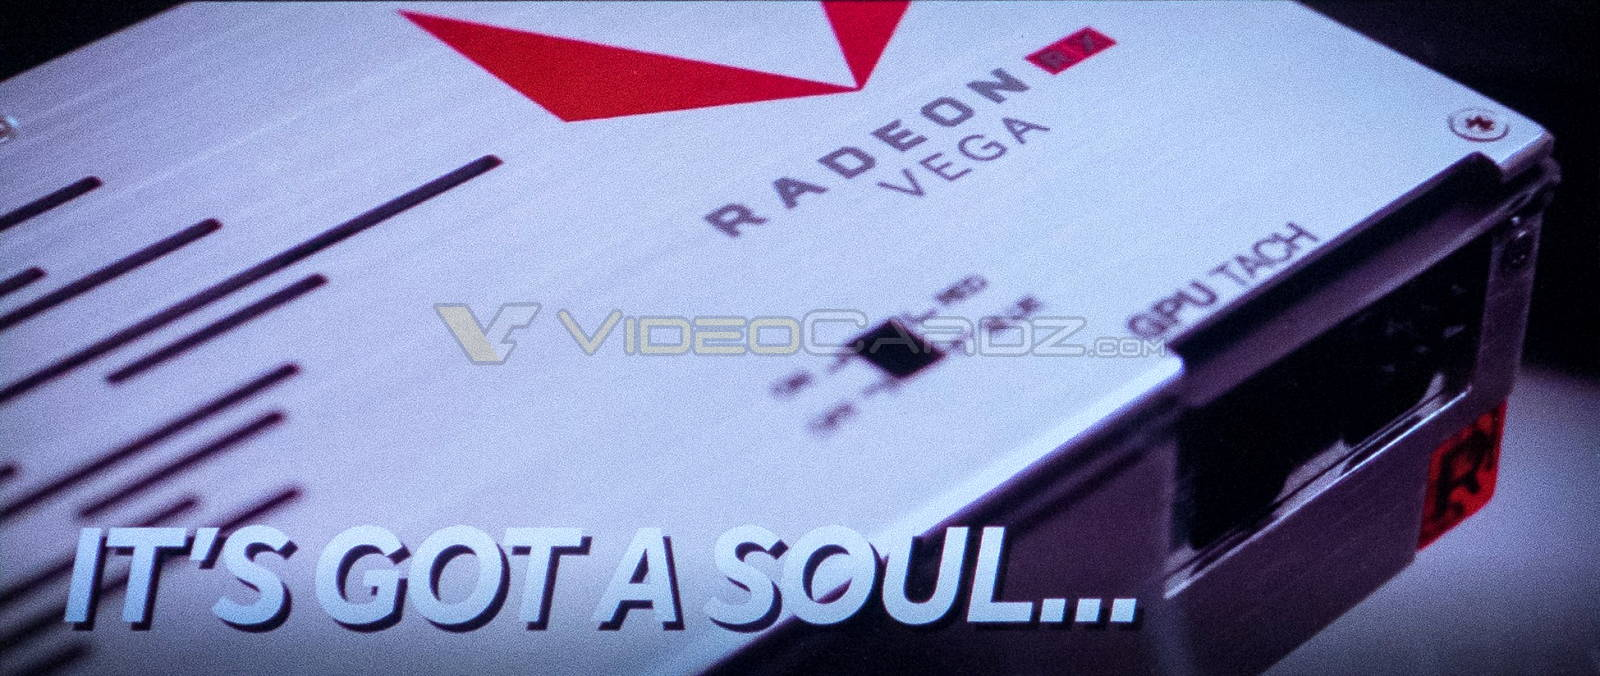 More RX Vega promotional images appear